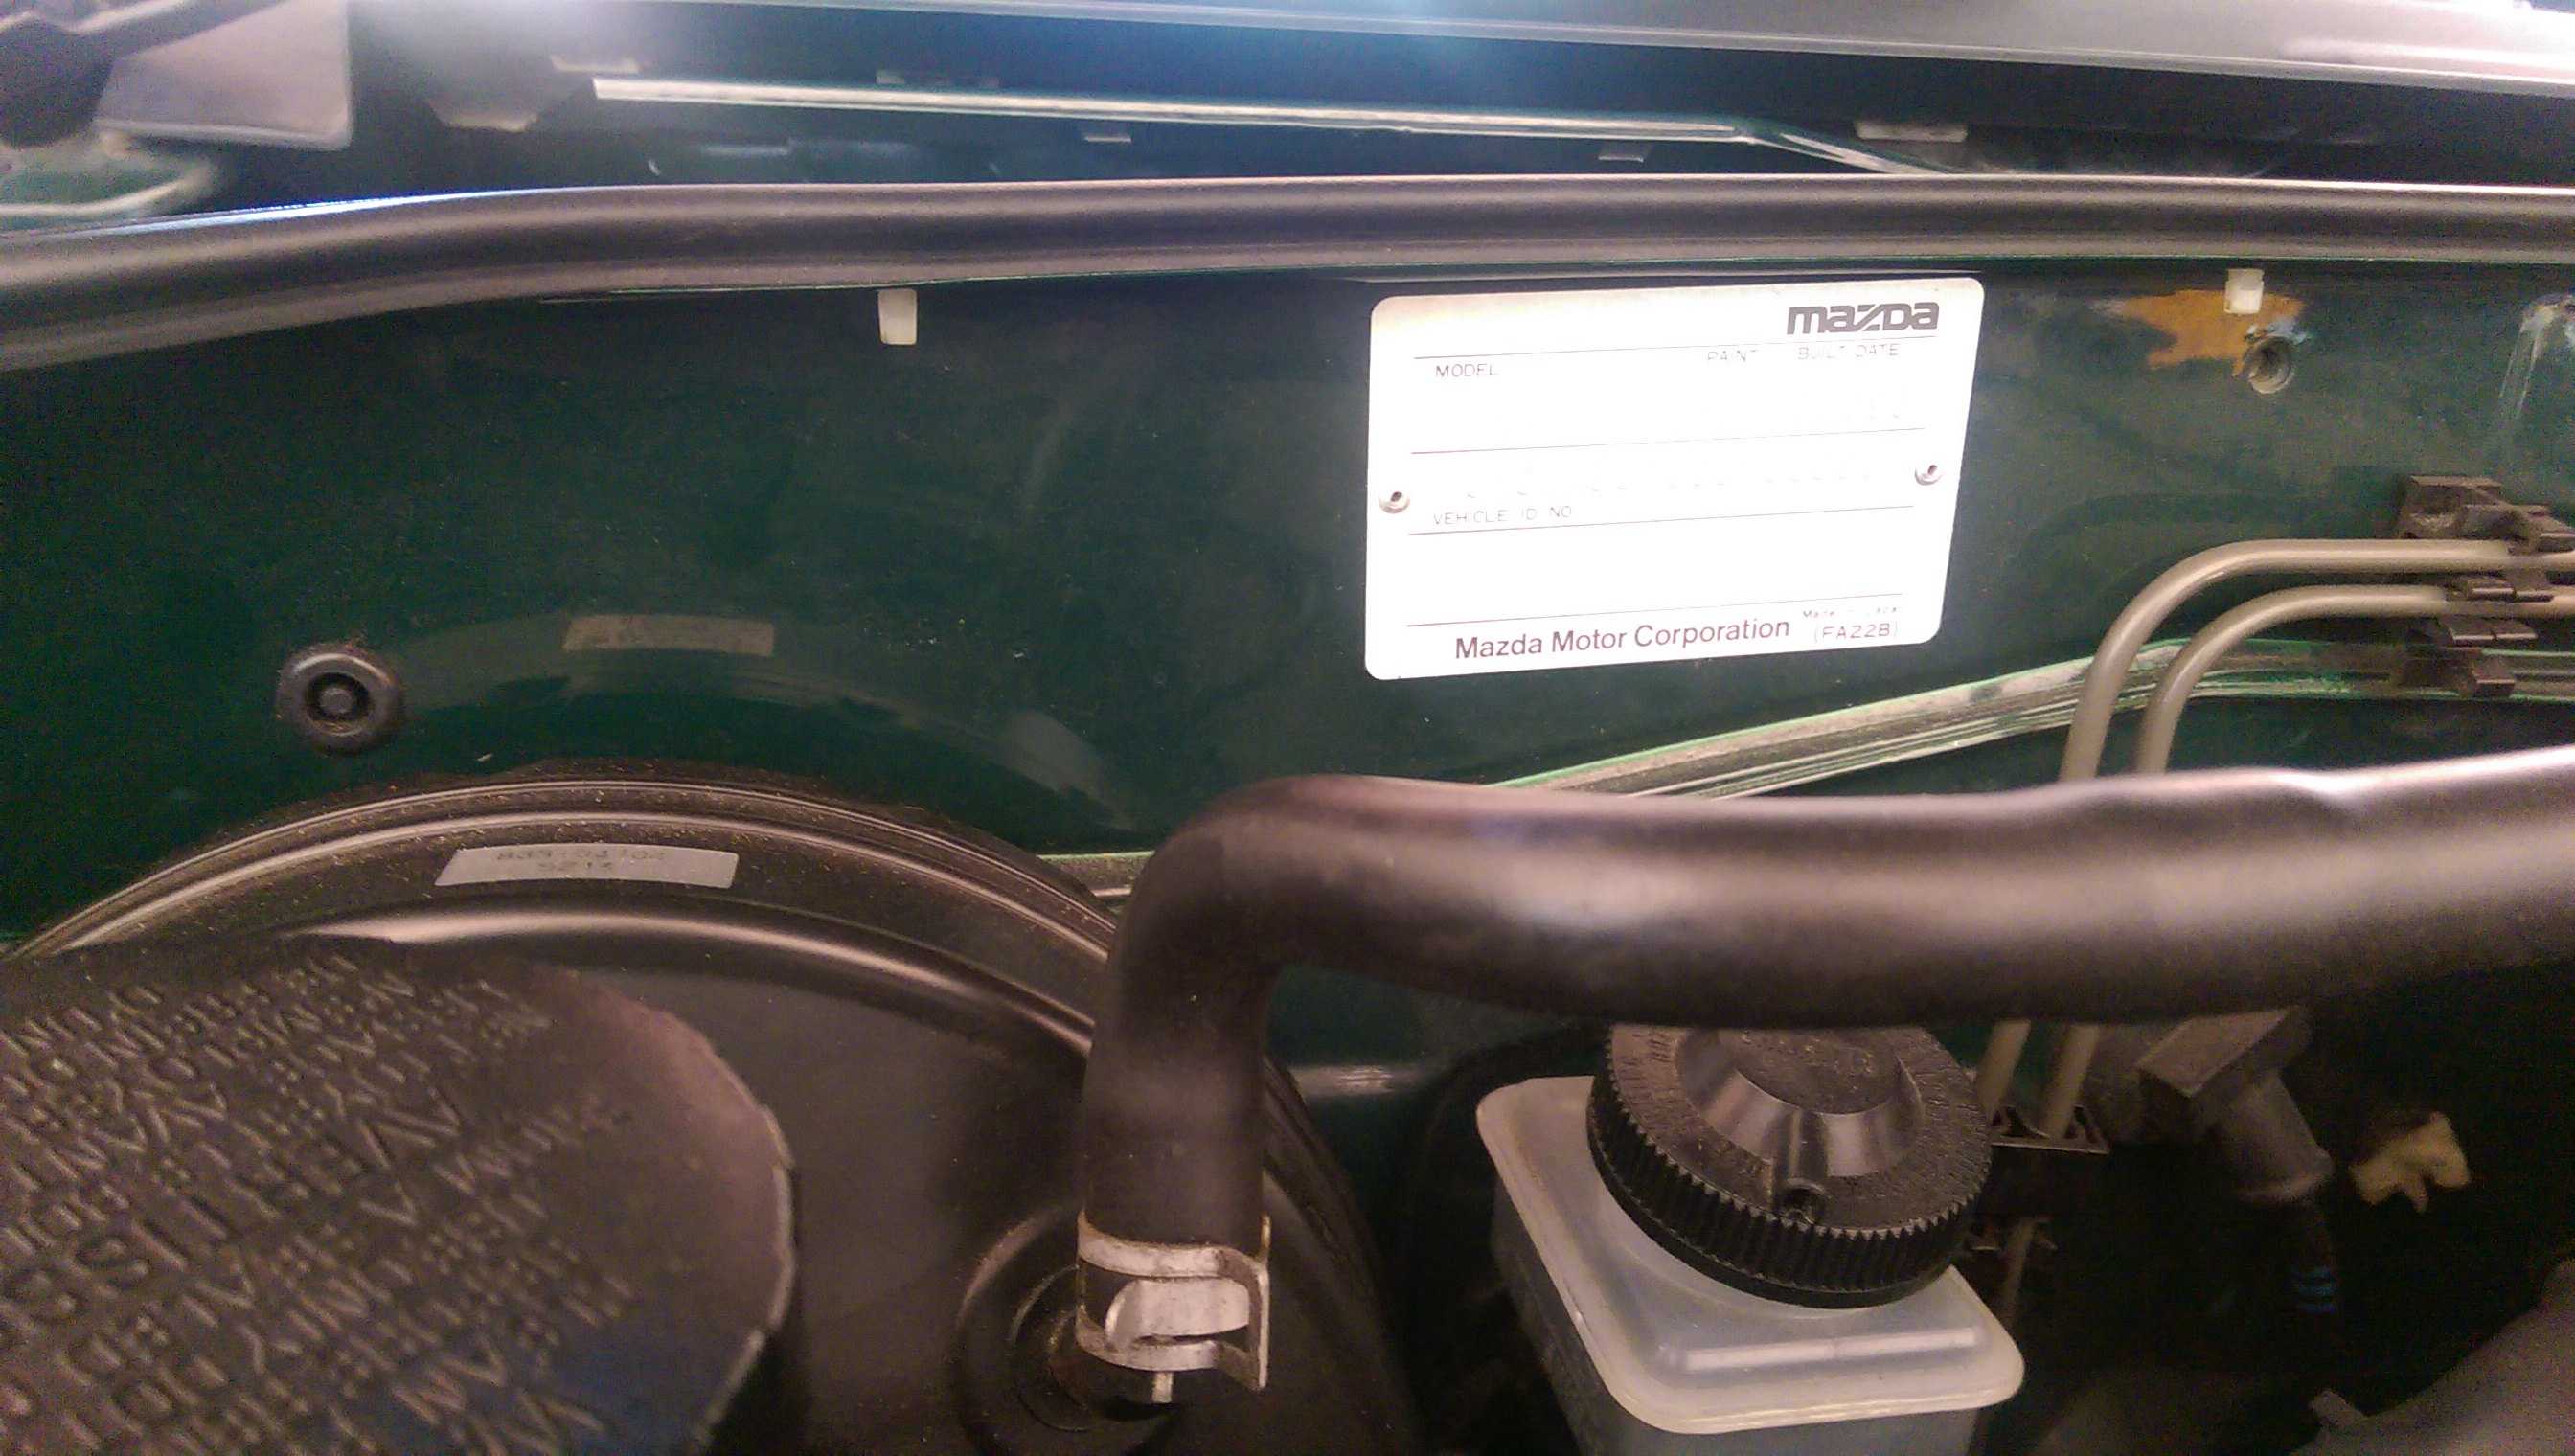 1996 Na8c Mx 5 Japanese Nostalgic Car 99 Miata Fuel Filter Location On Step 7 Strip Back And Expose The Extension Wire That Came With Nopro Washer Bottle A Stripper Is Handy But If You Dont Have One